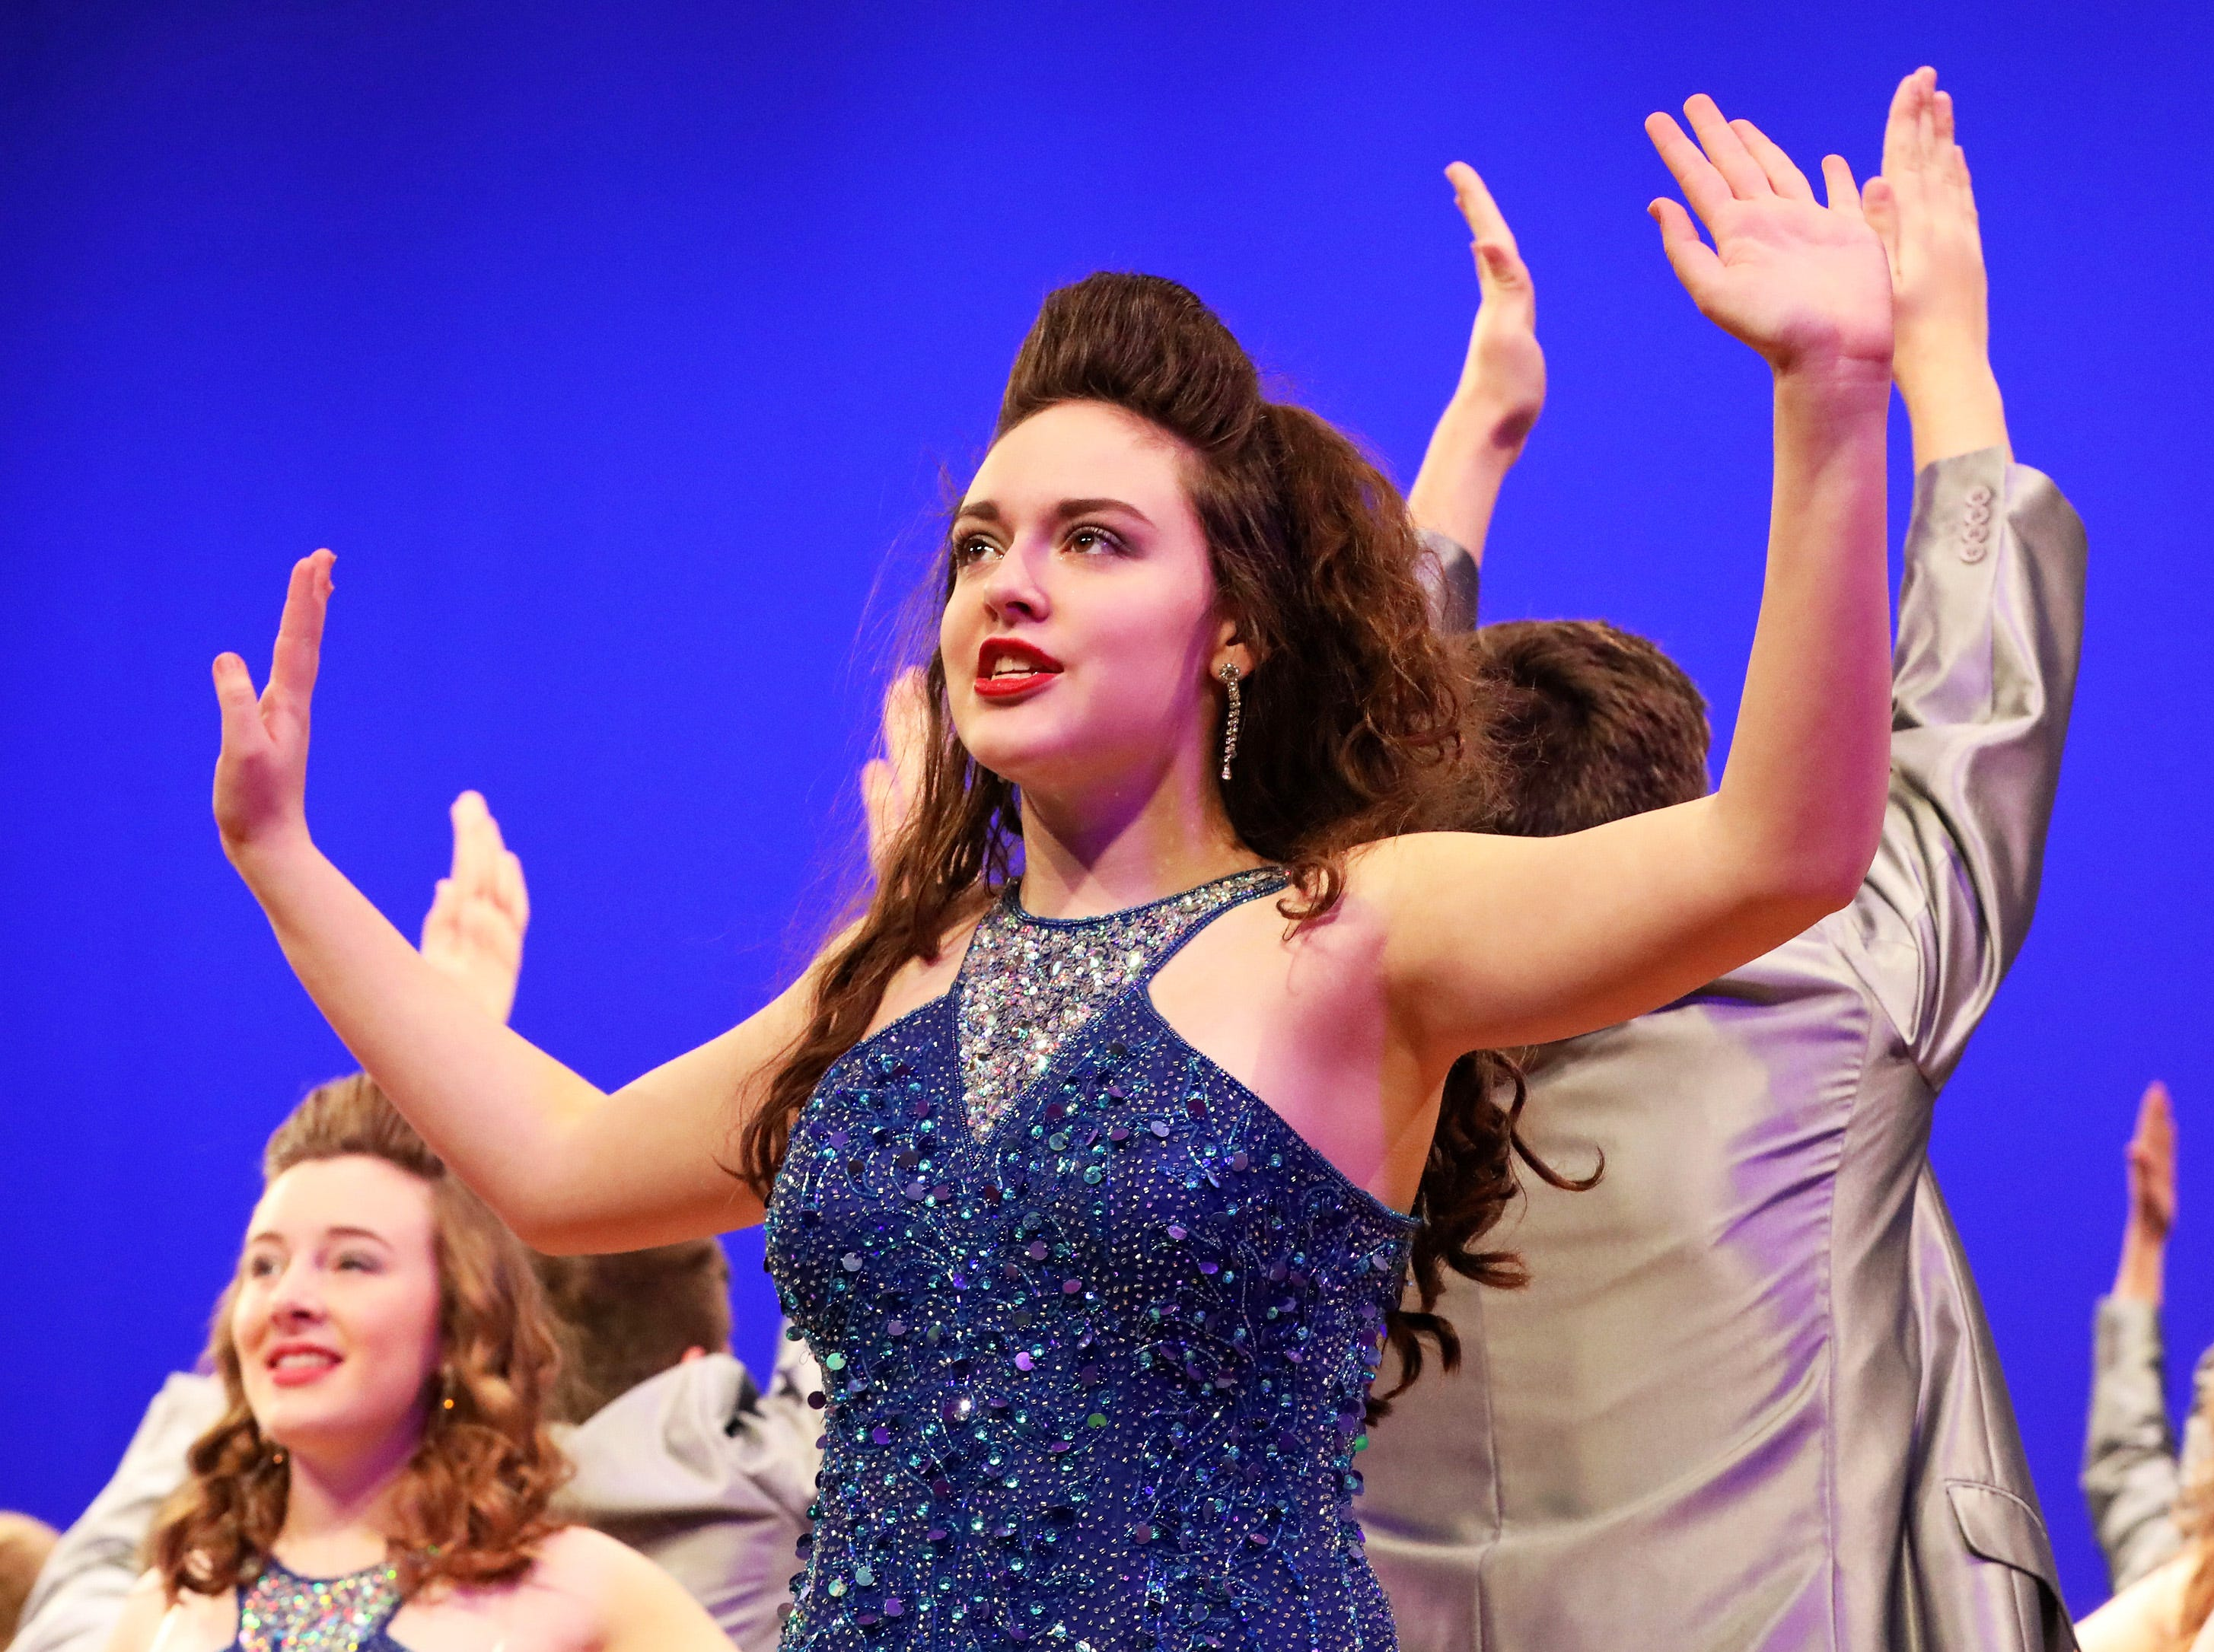 Show choir group Spirit from Waukee High is directed by Kathryn Mosiman. The group performed during the 23rd annual Showzam Show Choir Invitational featuring over 30 show choirs from central Iowa schools on Saturday, Jan. 19, 2019 in the auditorium of Johnston High School. Awards were presented for top choirs as well as for vocals, choreography, band, crew, female vocalist and male vocalist.